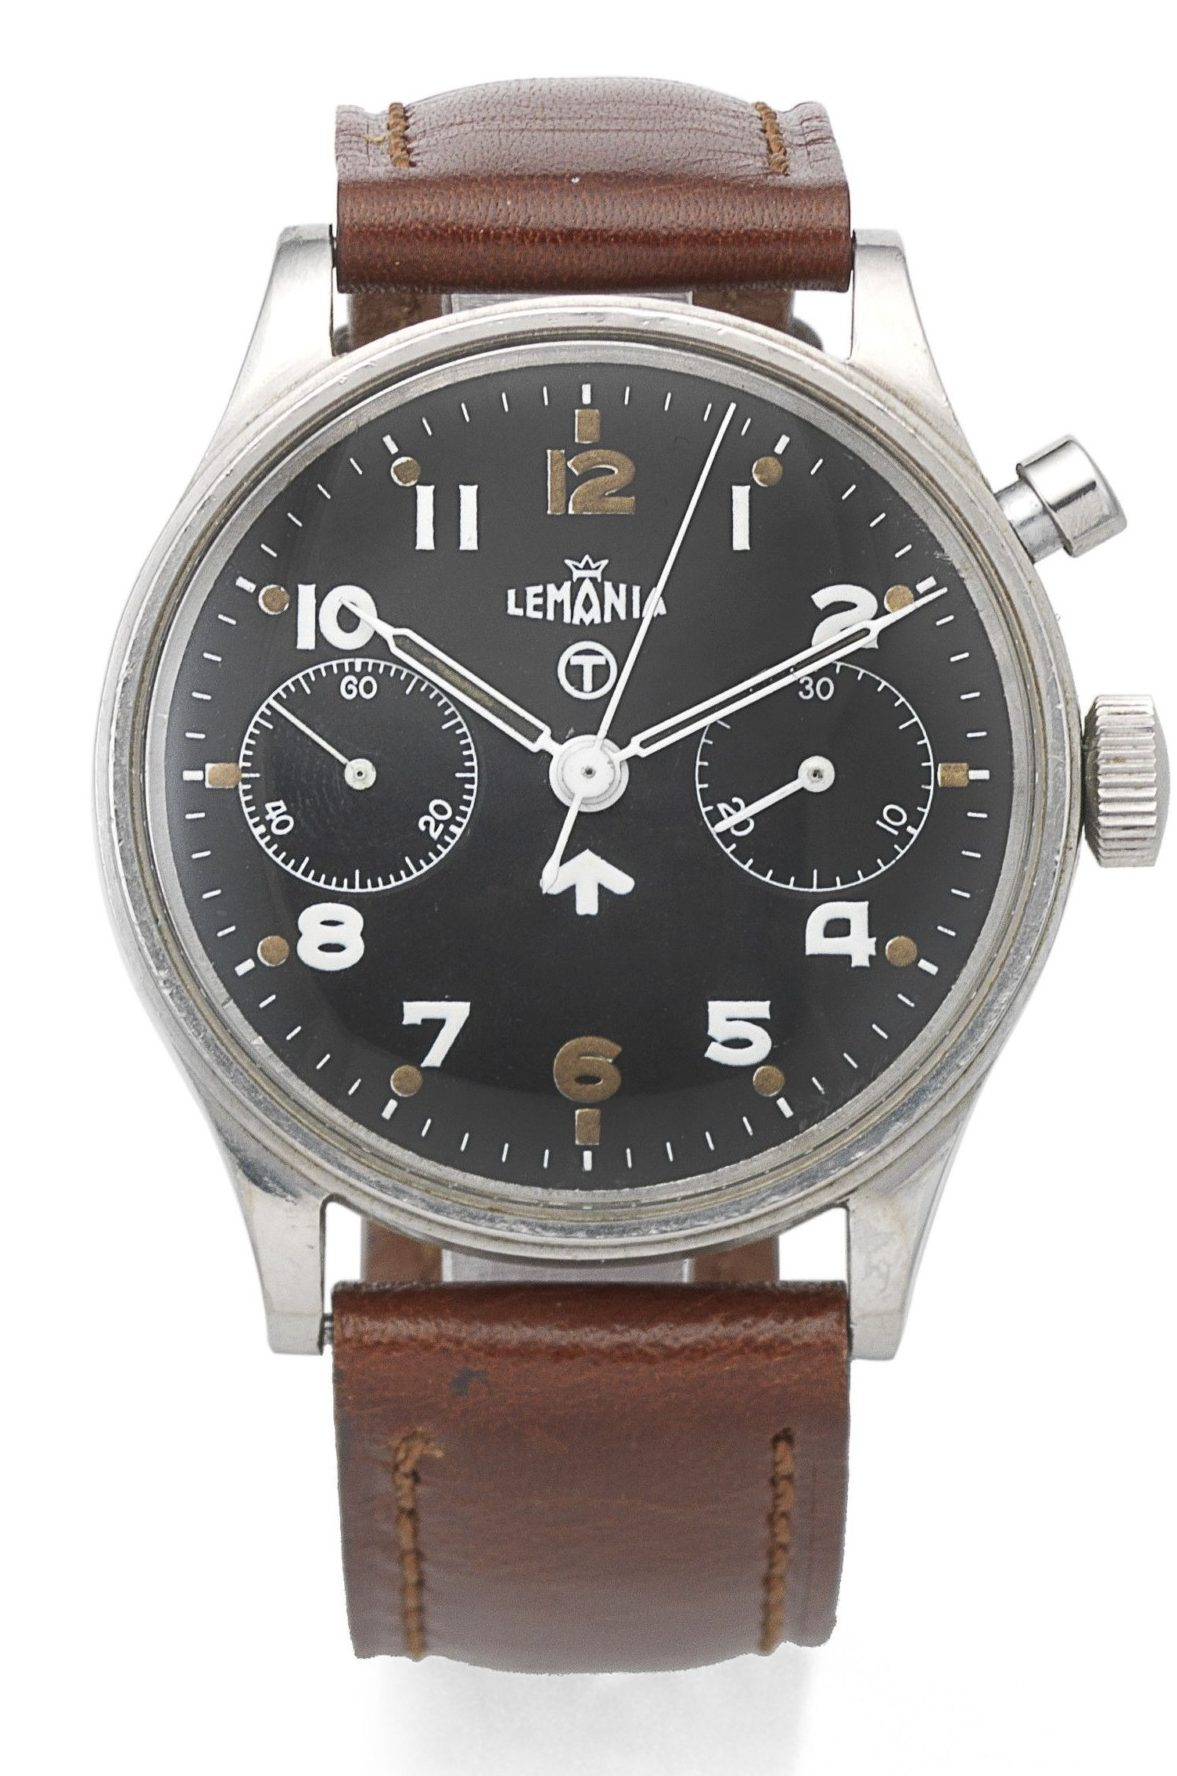 A Lemania stainless steel manual wind single button chronograph wristwatch Circa 1950 has an estimate of £1,500-2,000.